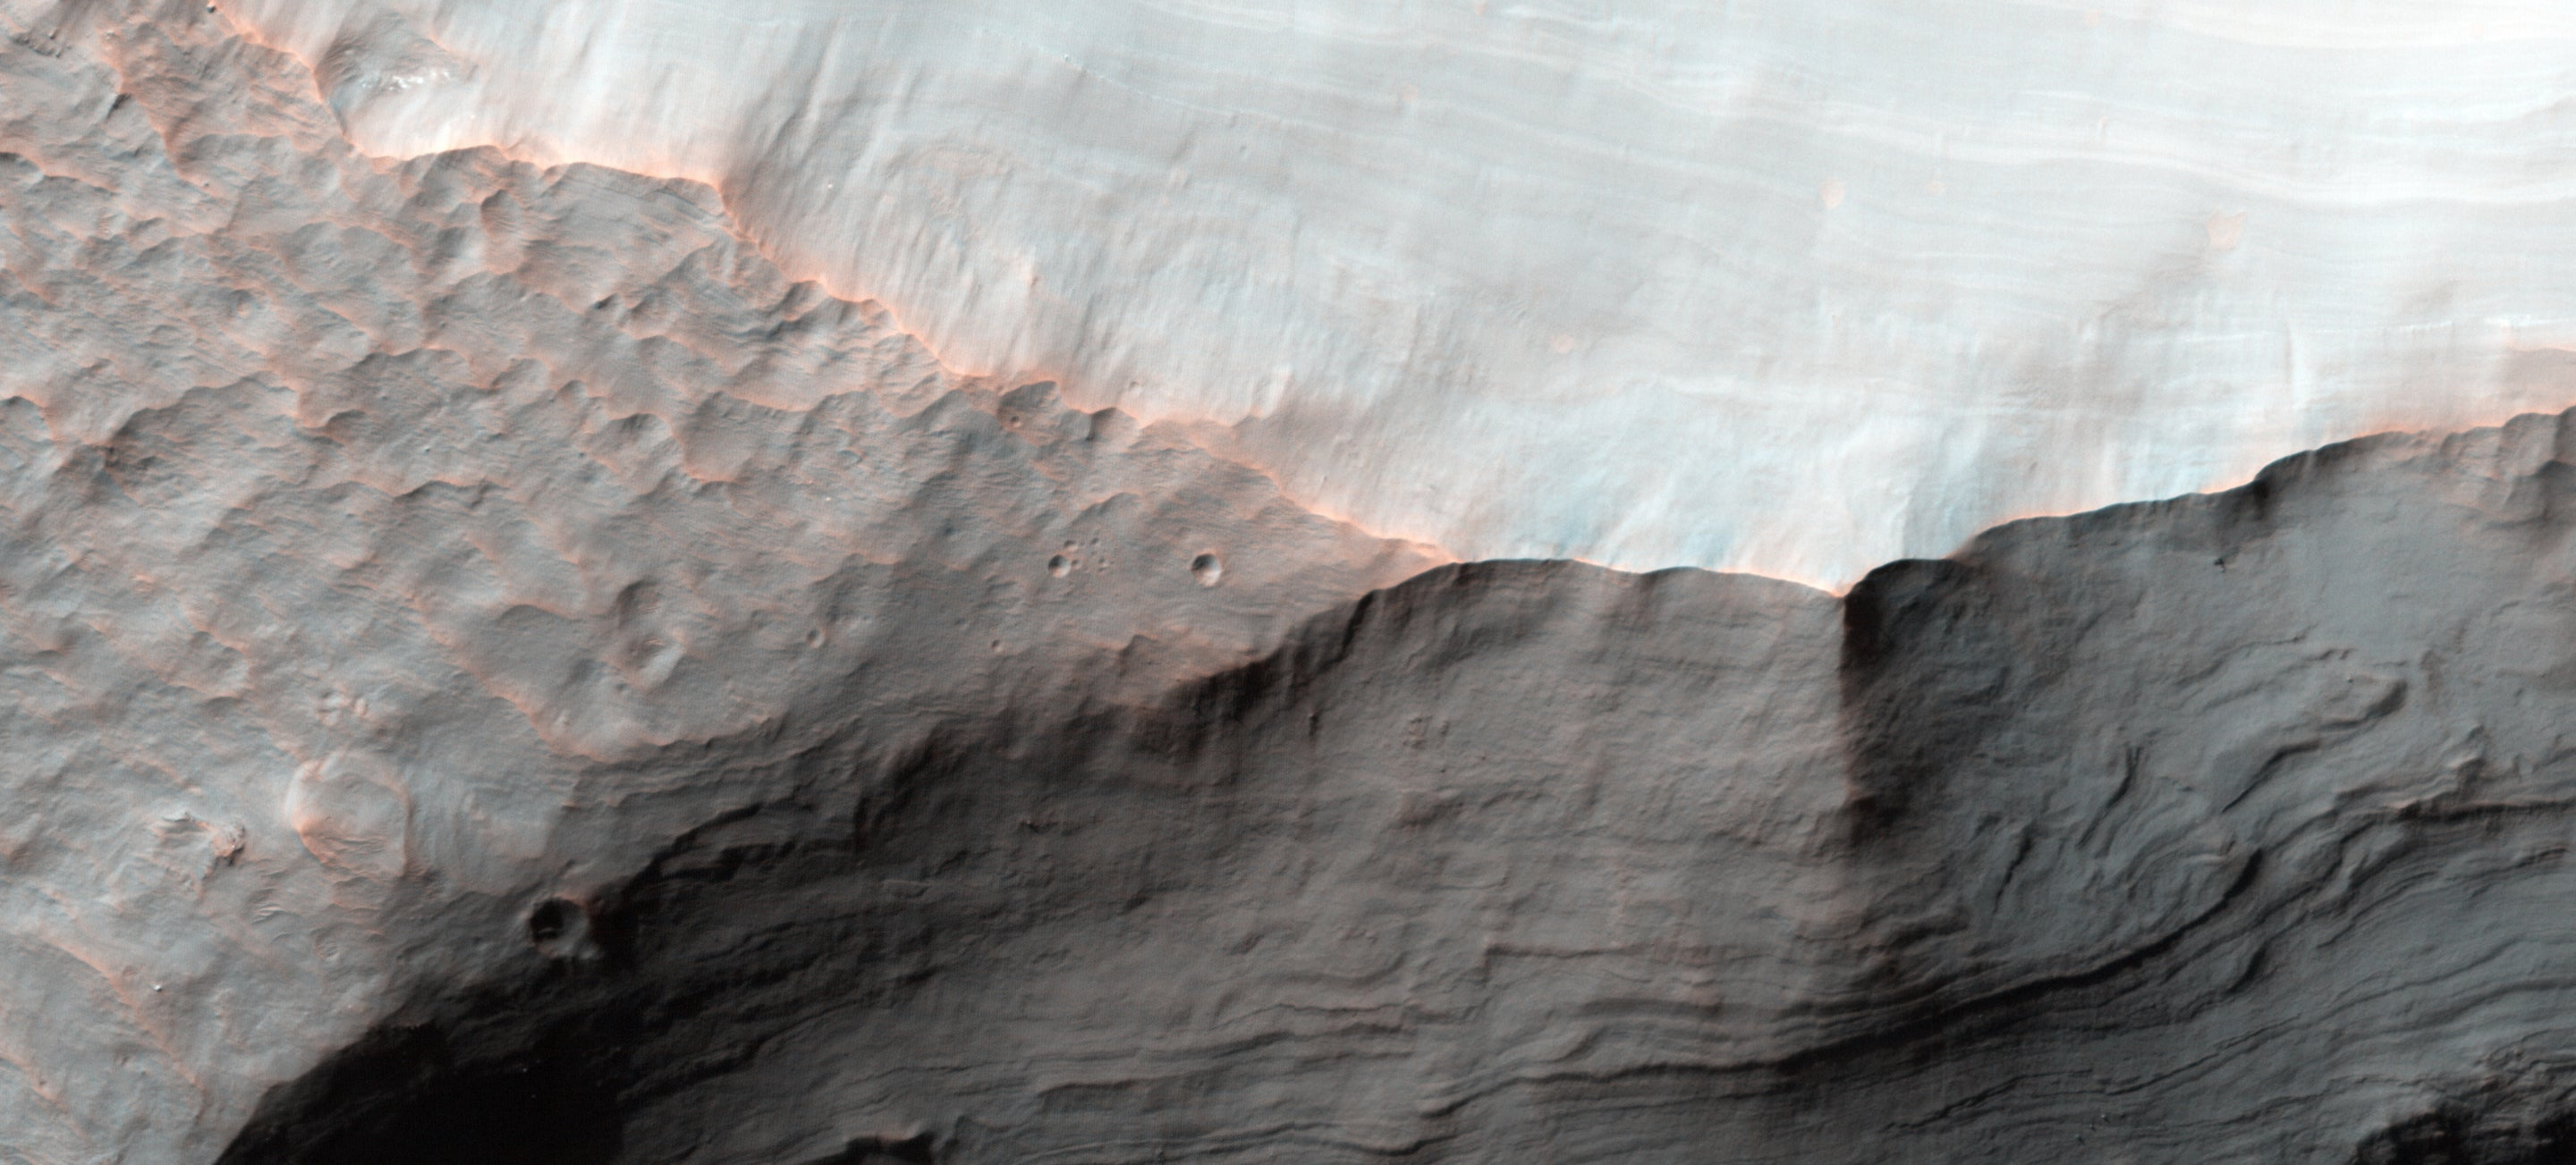 These Martian Impact Craters Will Reveal How Water Shaped the Planet